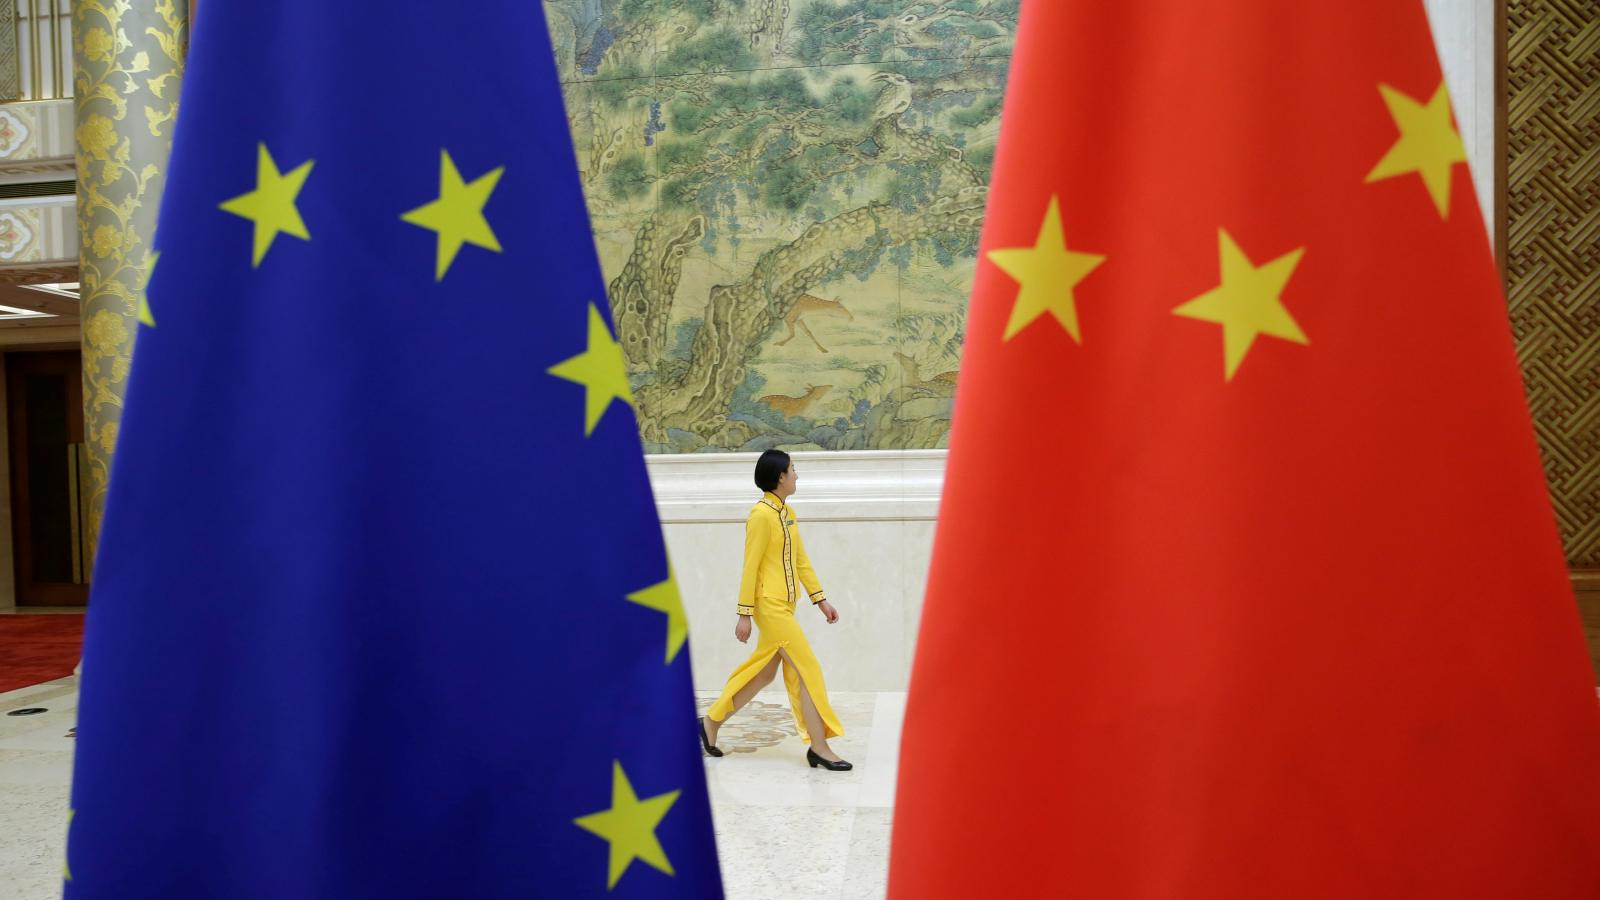 An attendant walks past flags of EU and China ahead of the EU-China High-level Economic Dialogue at Diaoyutai State Guesthouse in Beijing, China June 25, 2018. REUTERS/Jason Lee